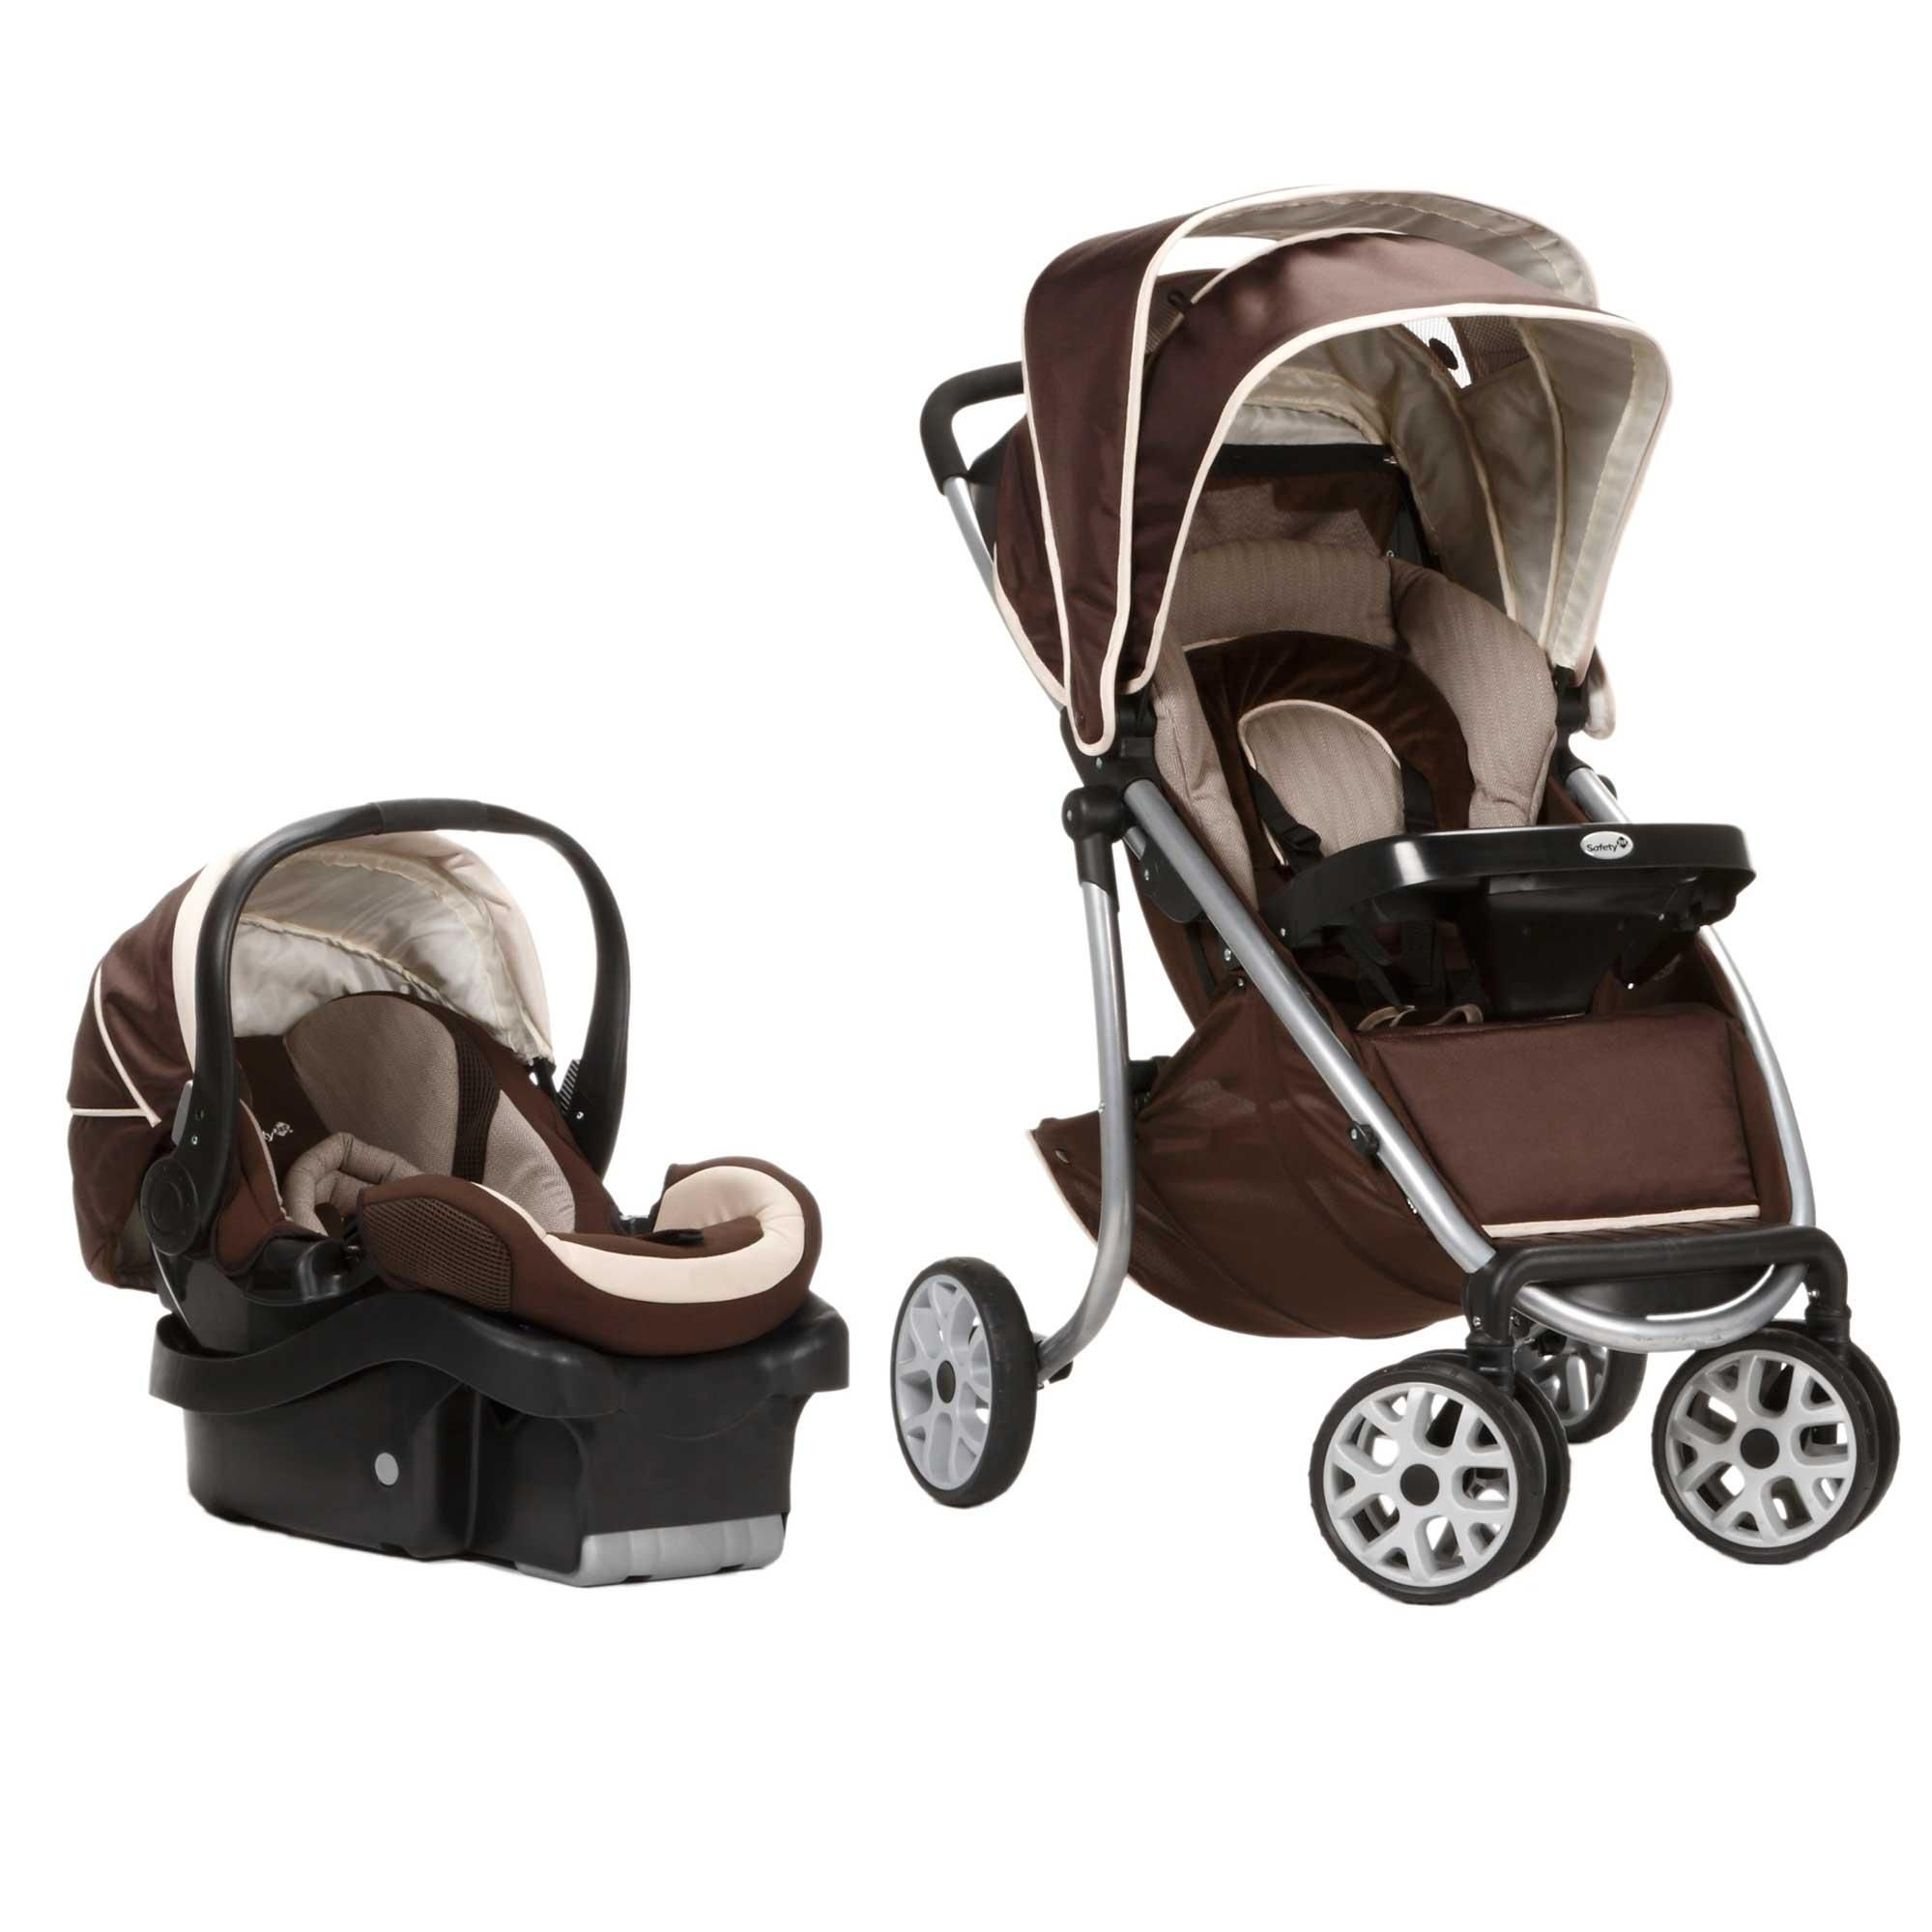 Stetson New car seat and stroller